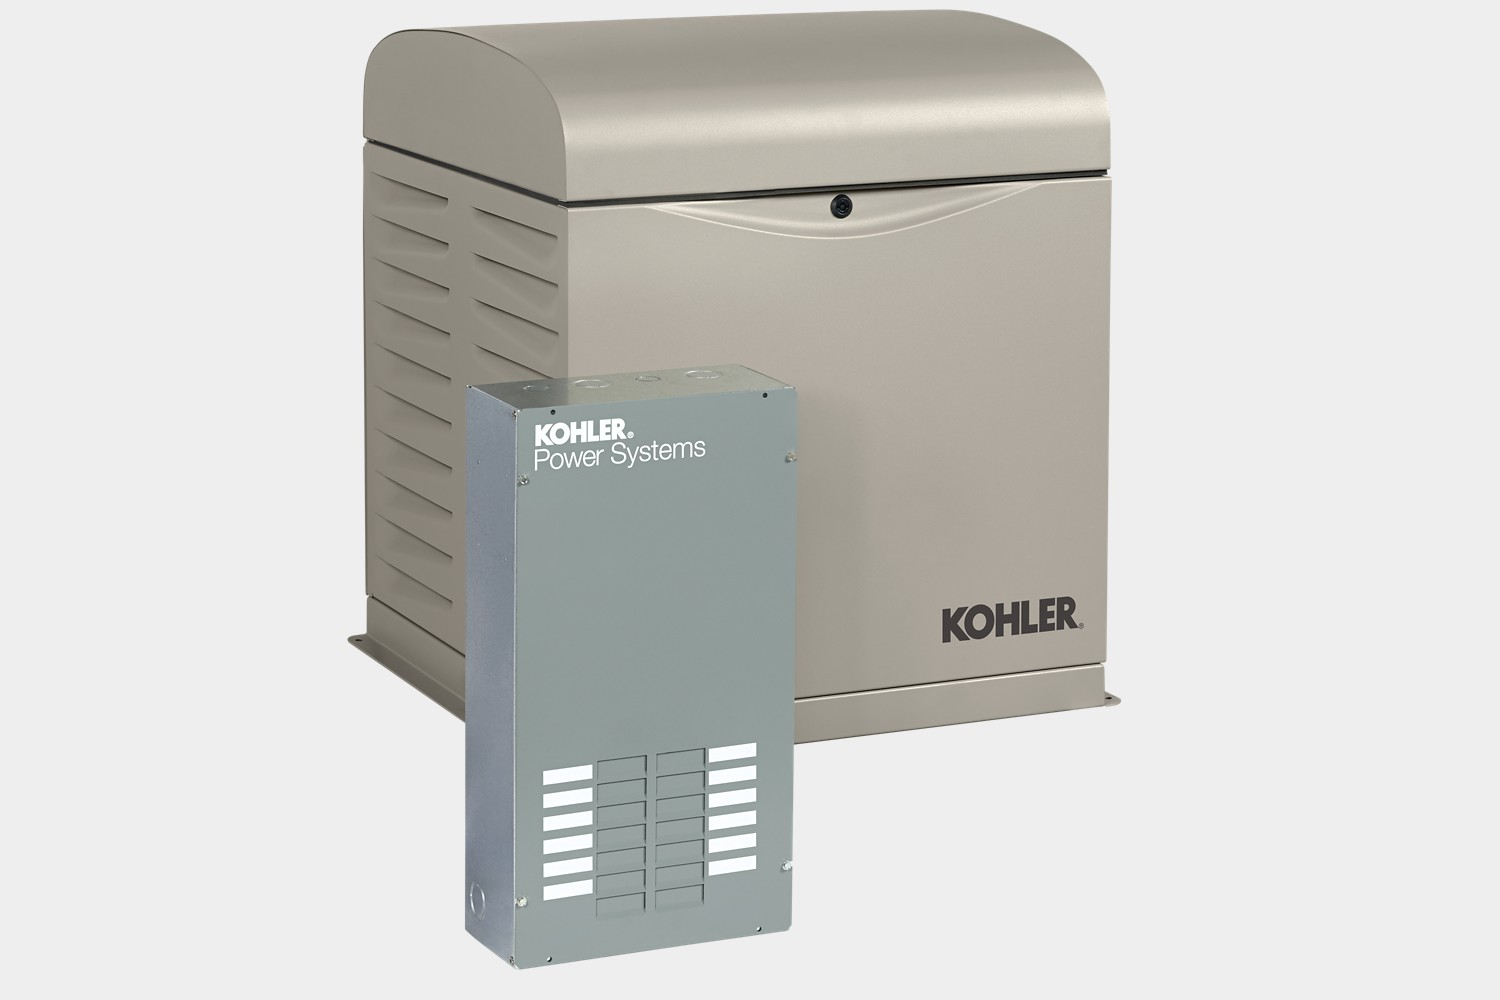 kohler generators | 12resvl with automatic transfer switch and,Wiring diagram,Wiring Diagram For Kohler 60Rcl Generator